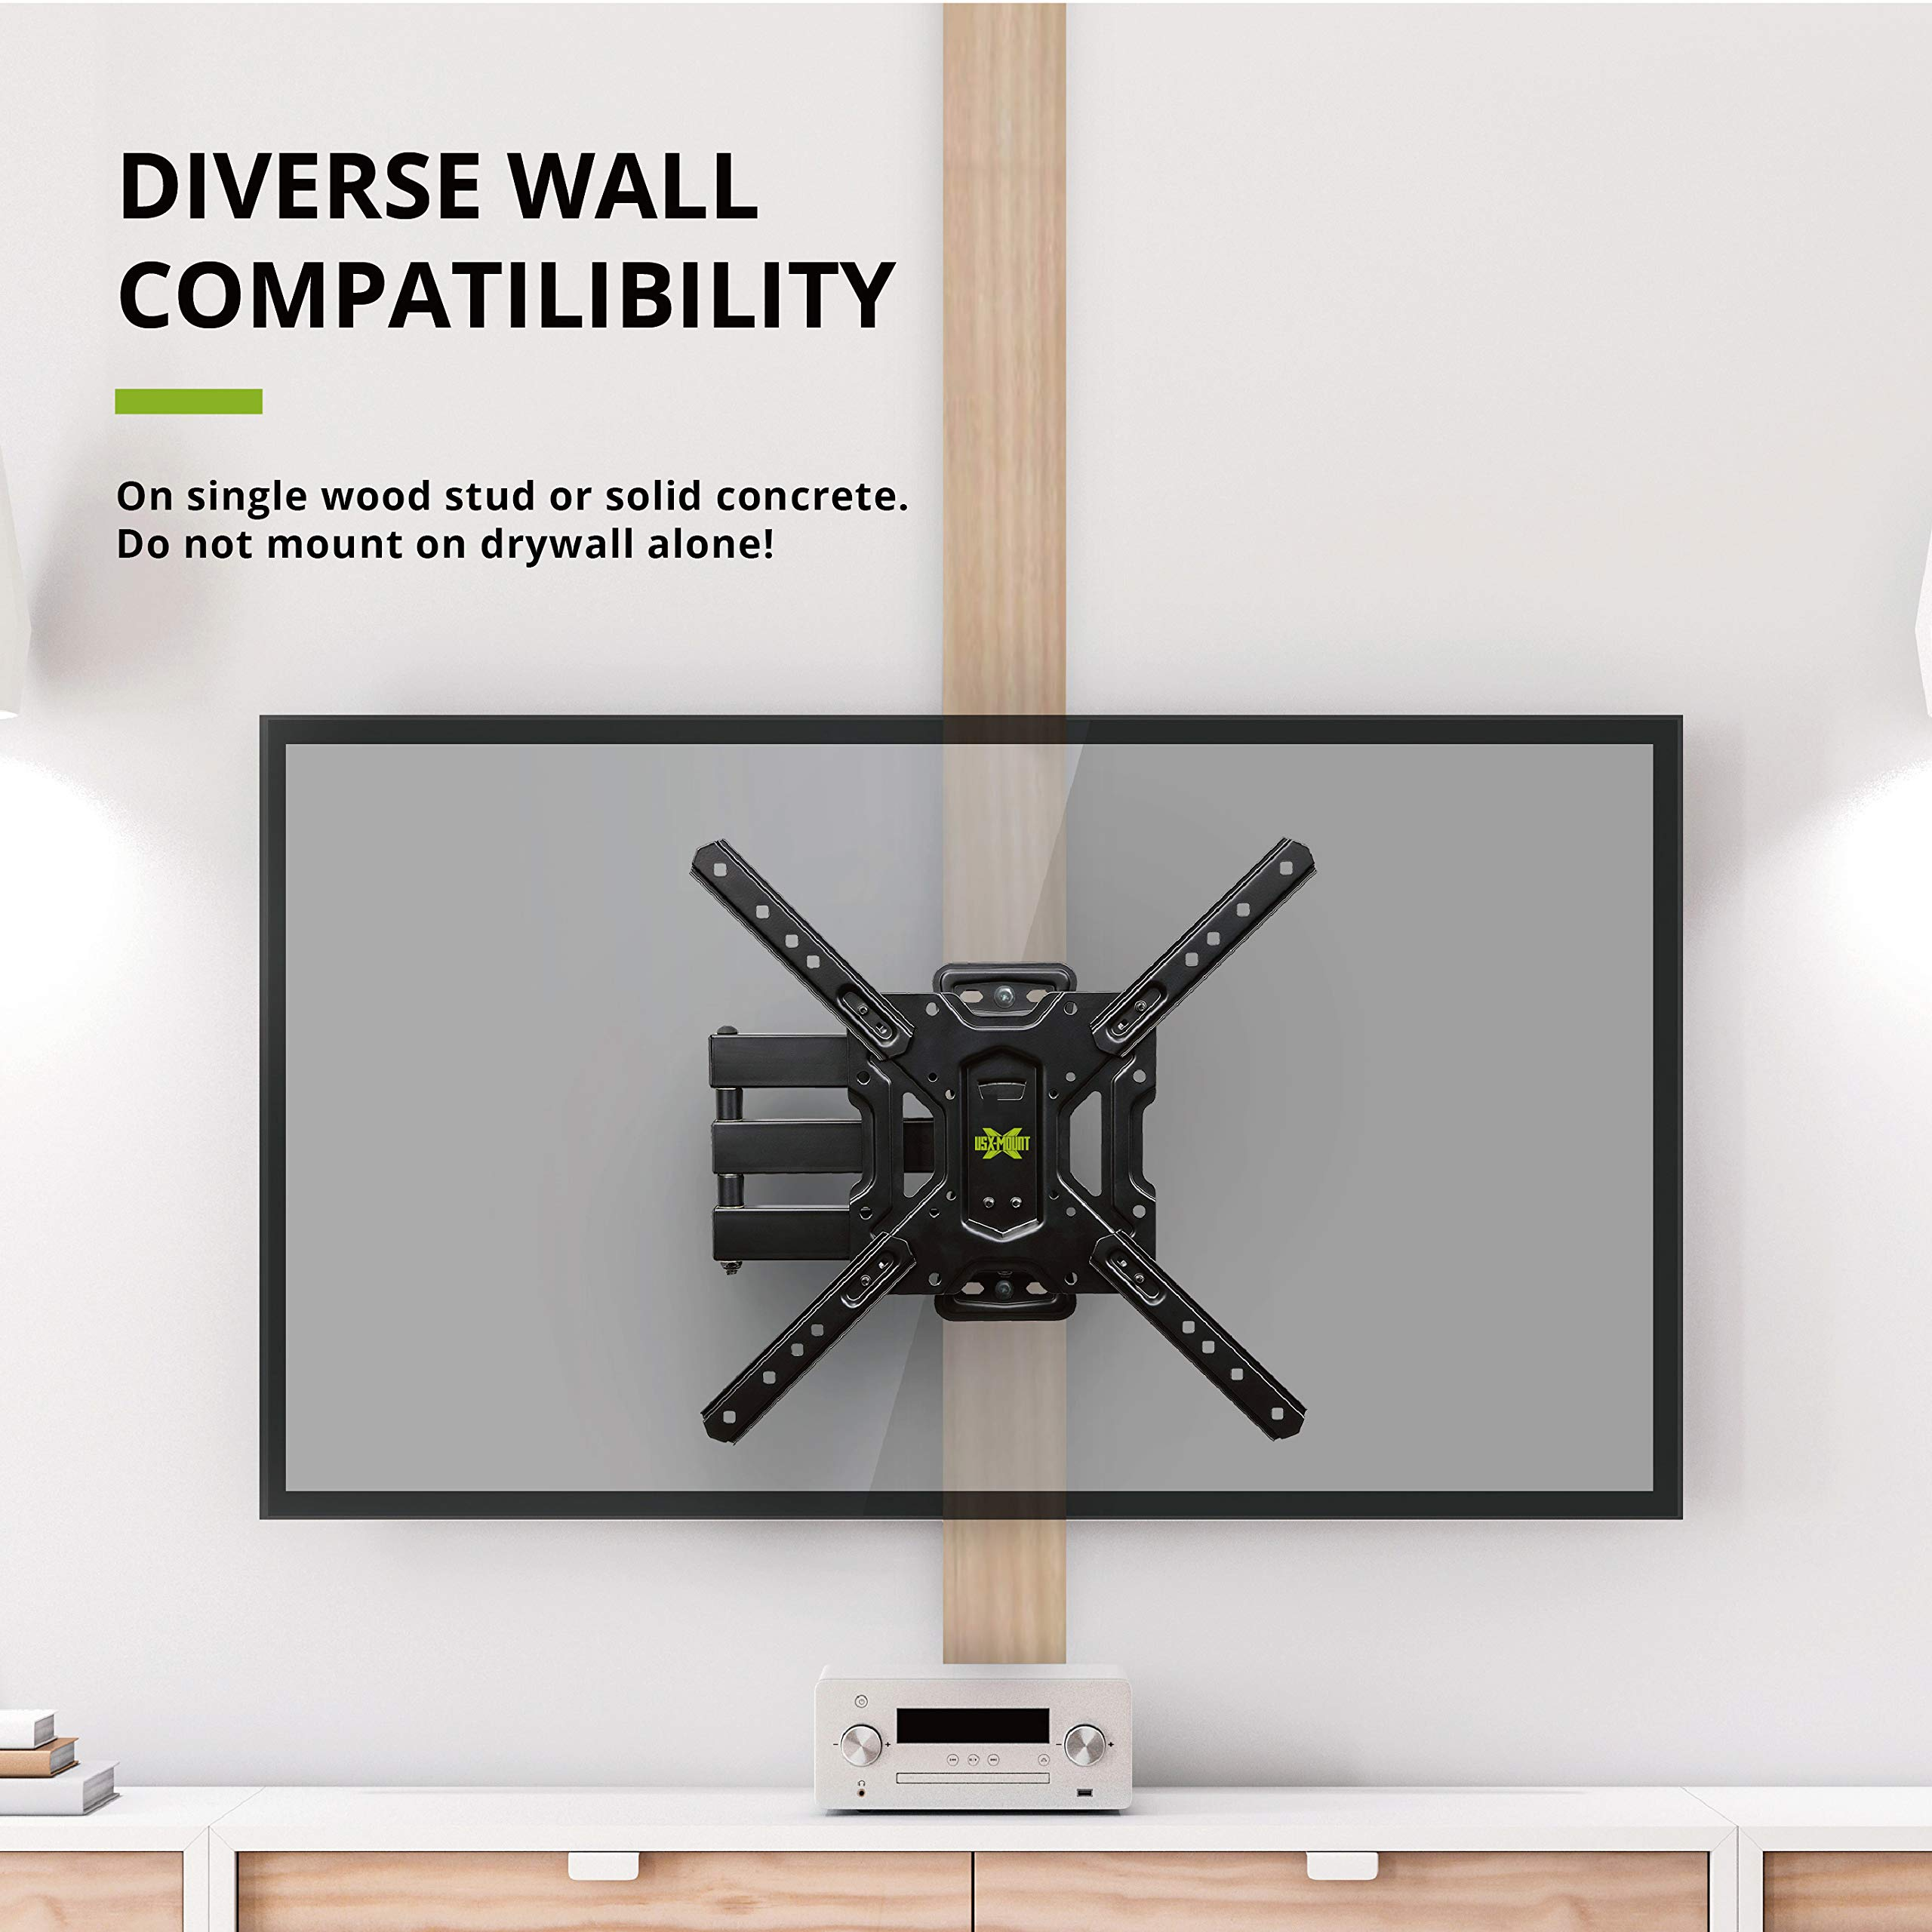 USX MOUNT Full Motion Swivel Articulating Tilt TV Wall Mount Bracket for 26-55'' LED, OLED, 4K TVs-Fit for 32, 40, 50 TV with VESA Up to 400x400mm-Weight Capacity Up to 60lbs by USX MOUNT (Image #5)